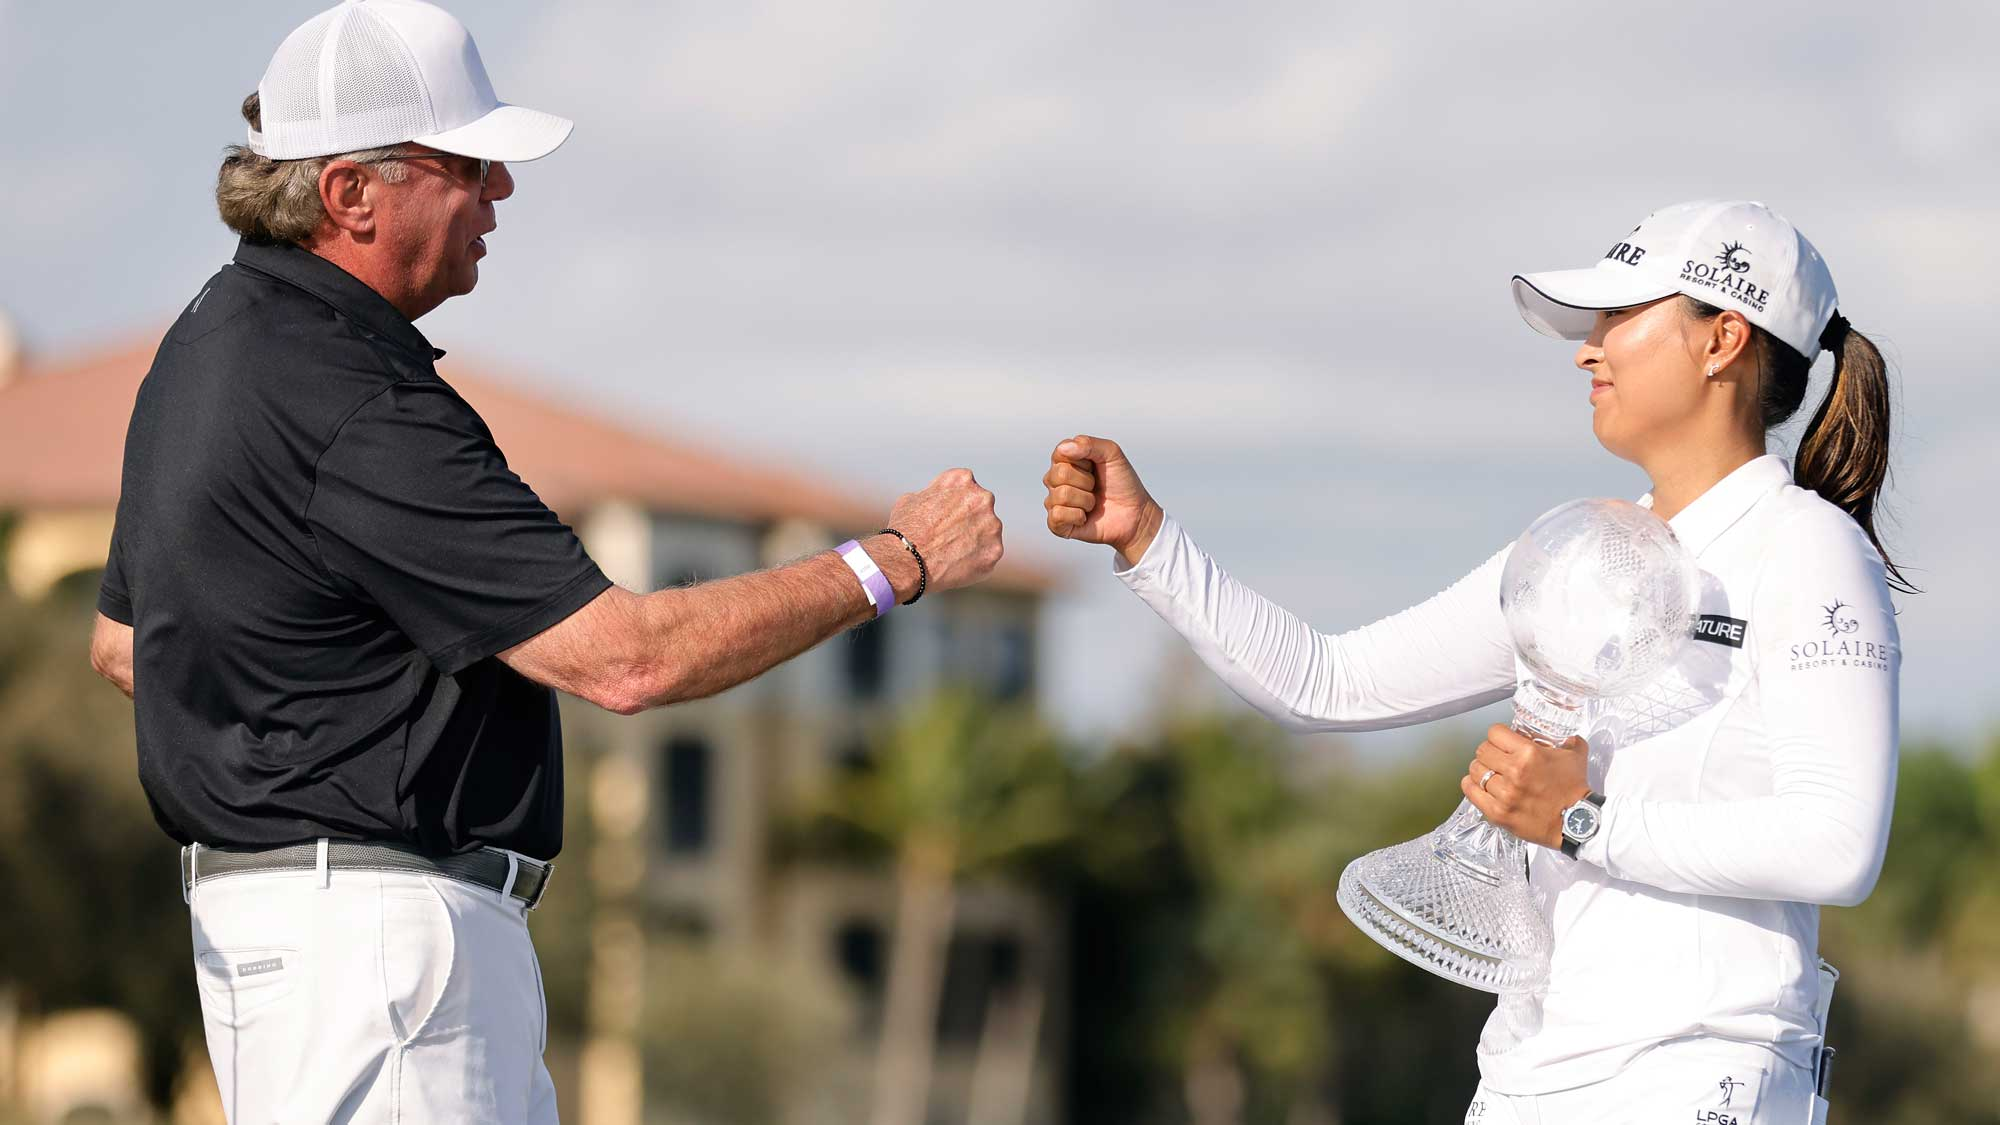 CME Group CEO Terry Duffy (L) fist bumps Jin Young Ko of Korea after she won the CME Group Tour Championship